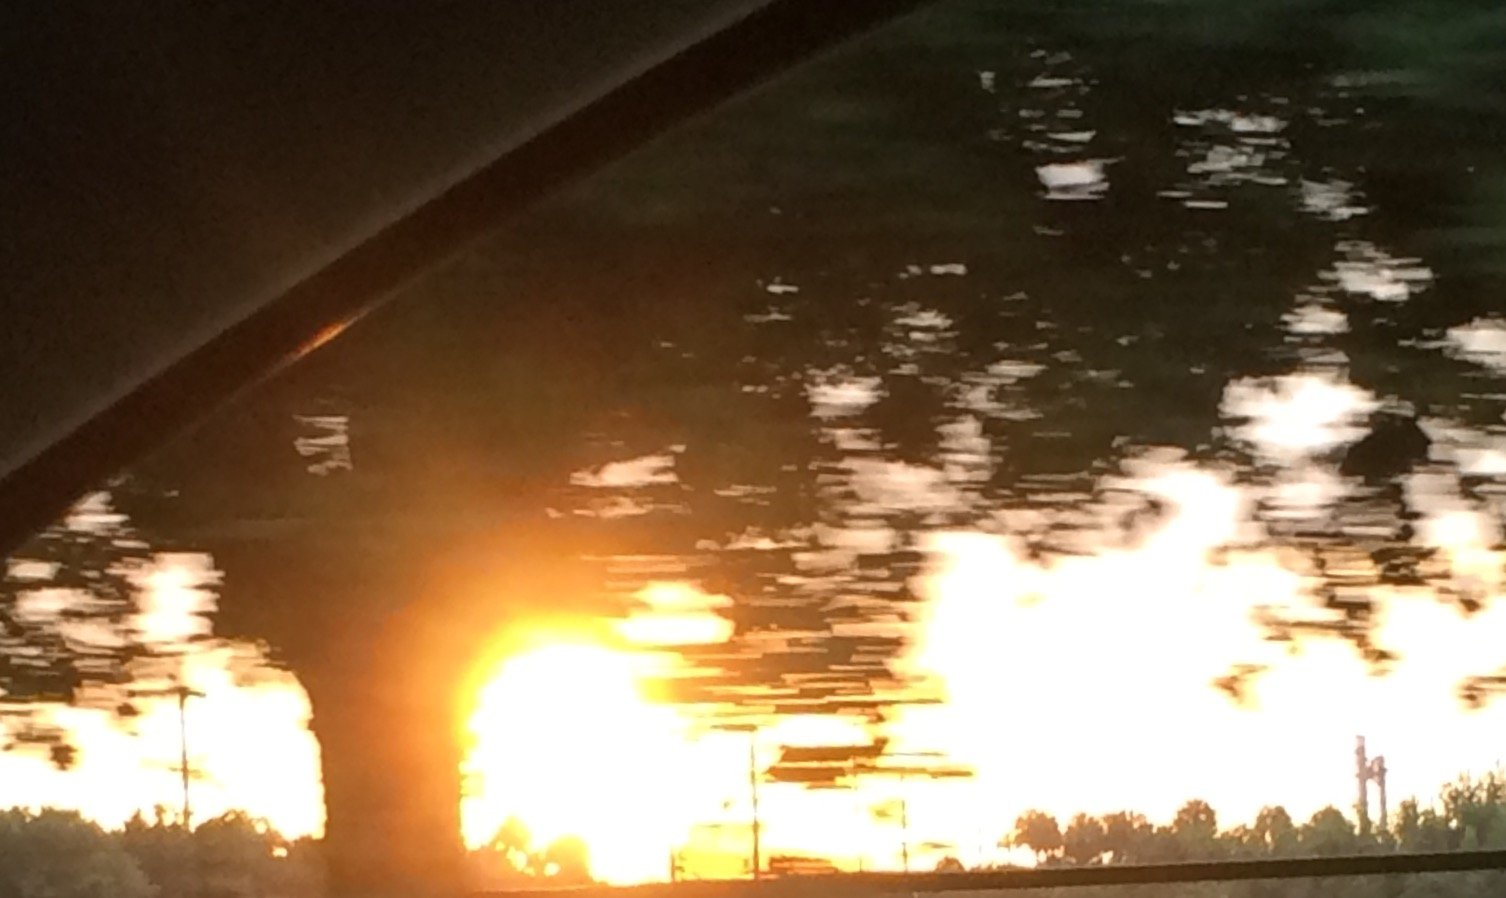 sunrise from a moving car window